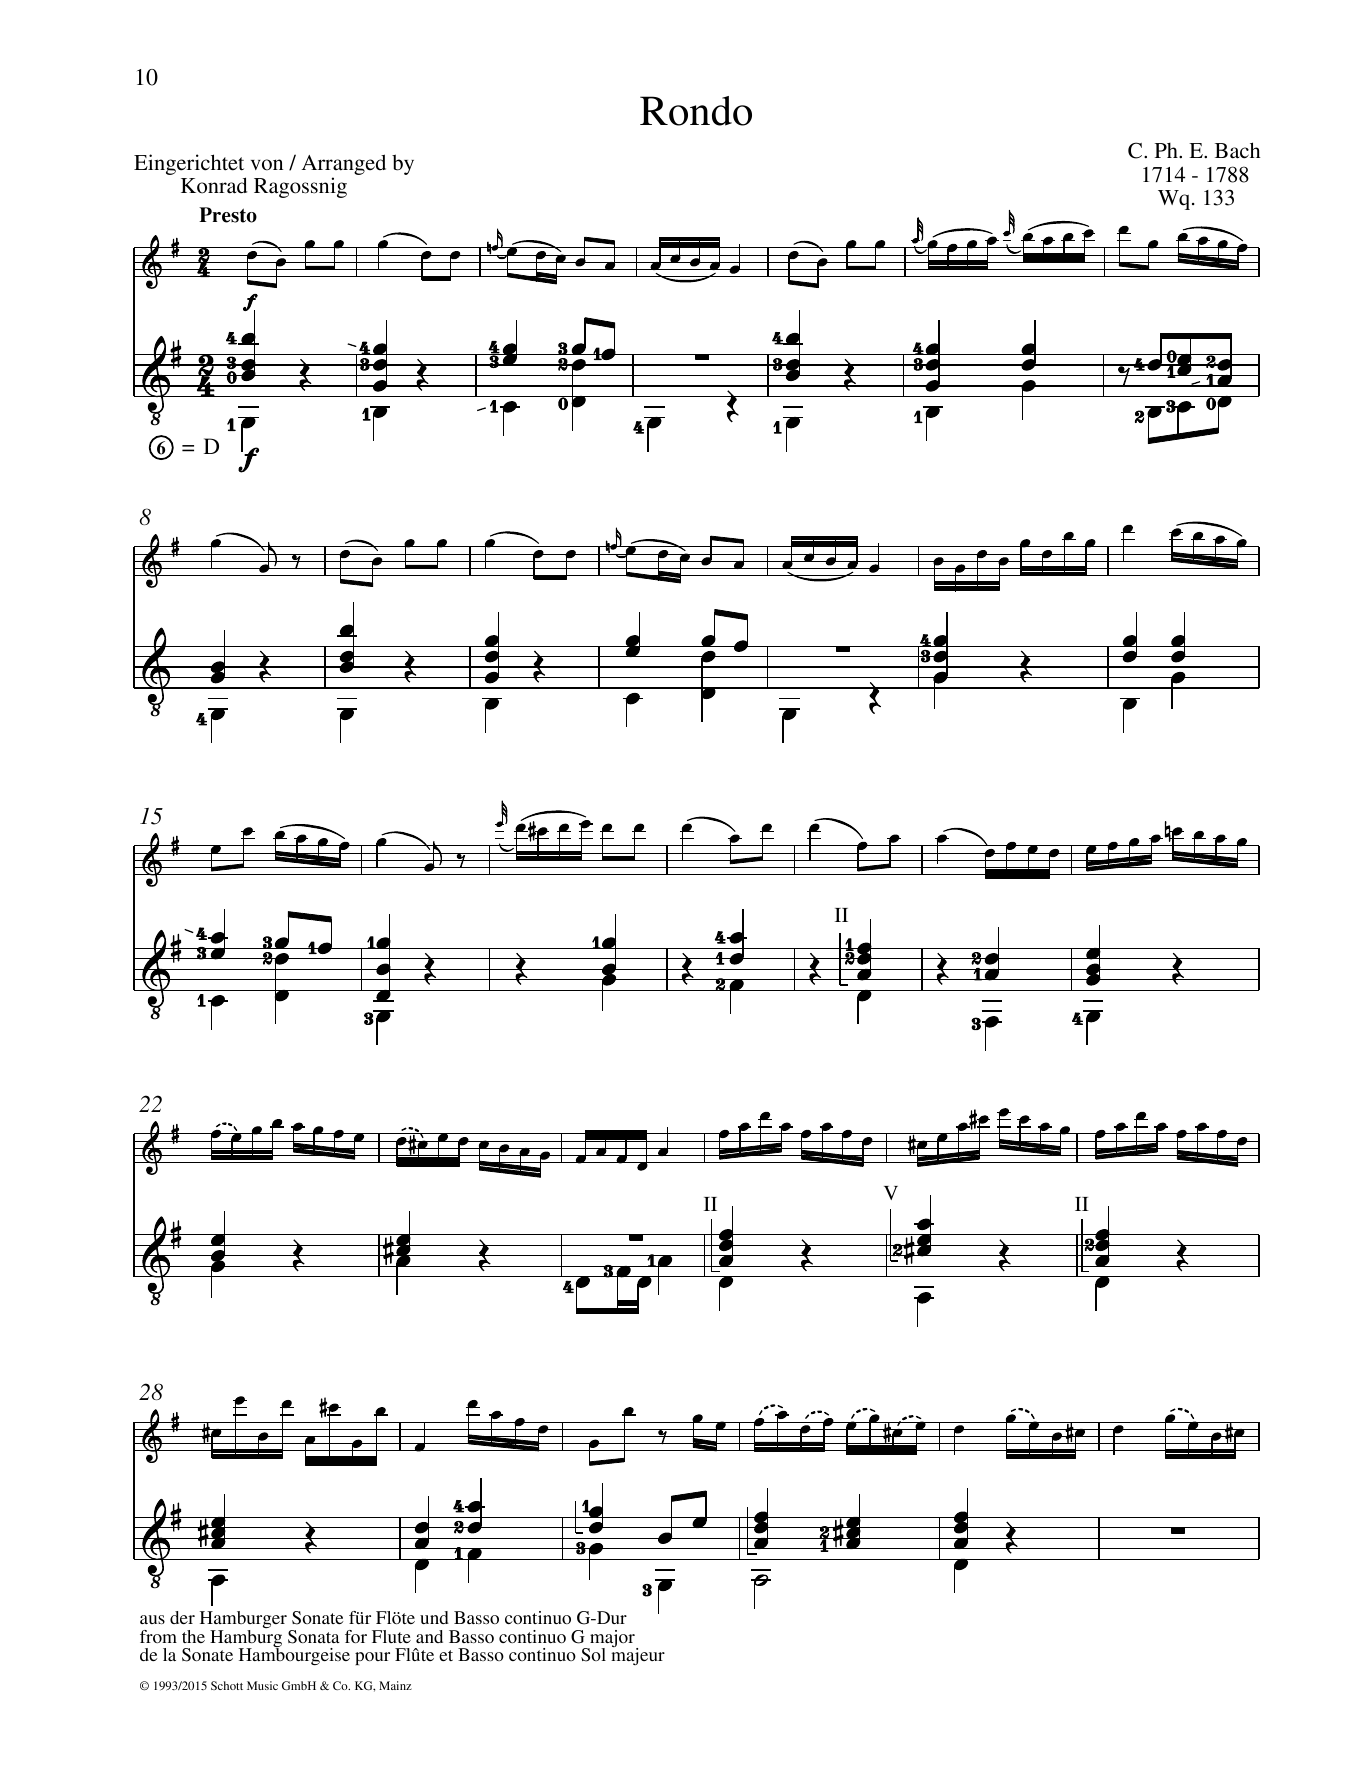 Rondo - Full Score Partition Digitale